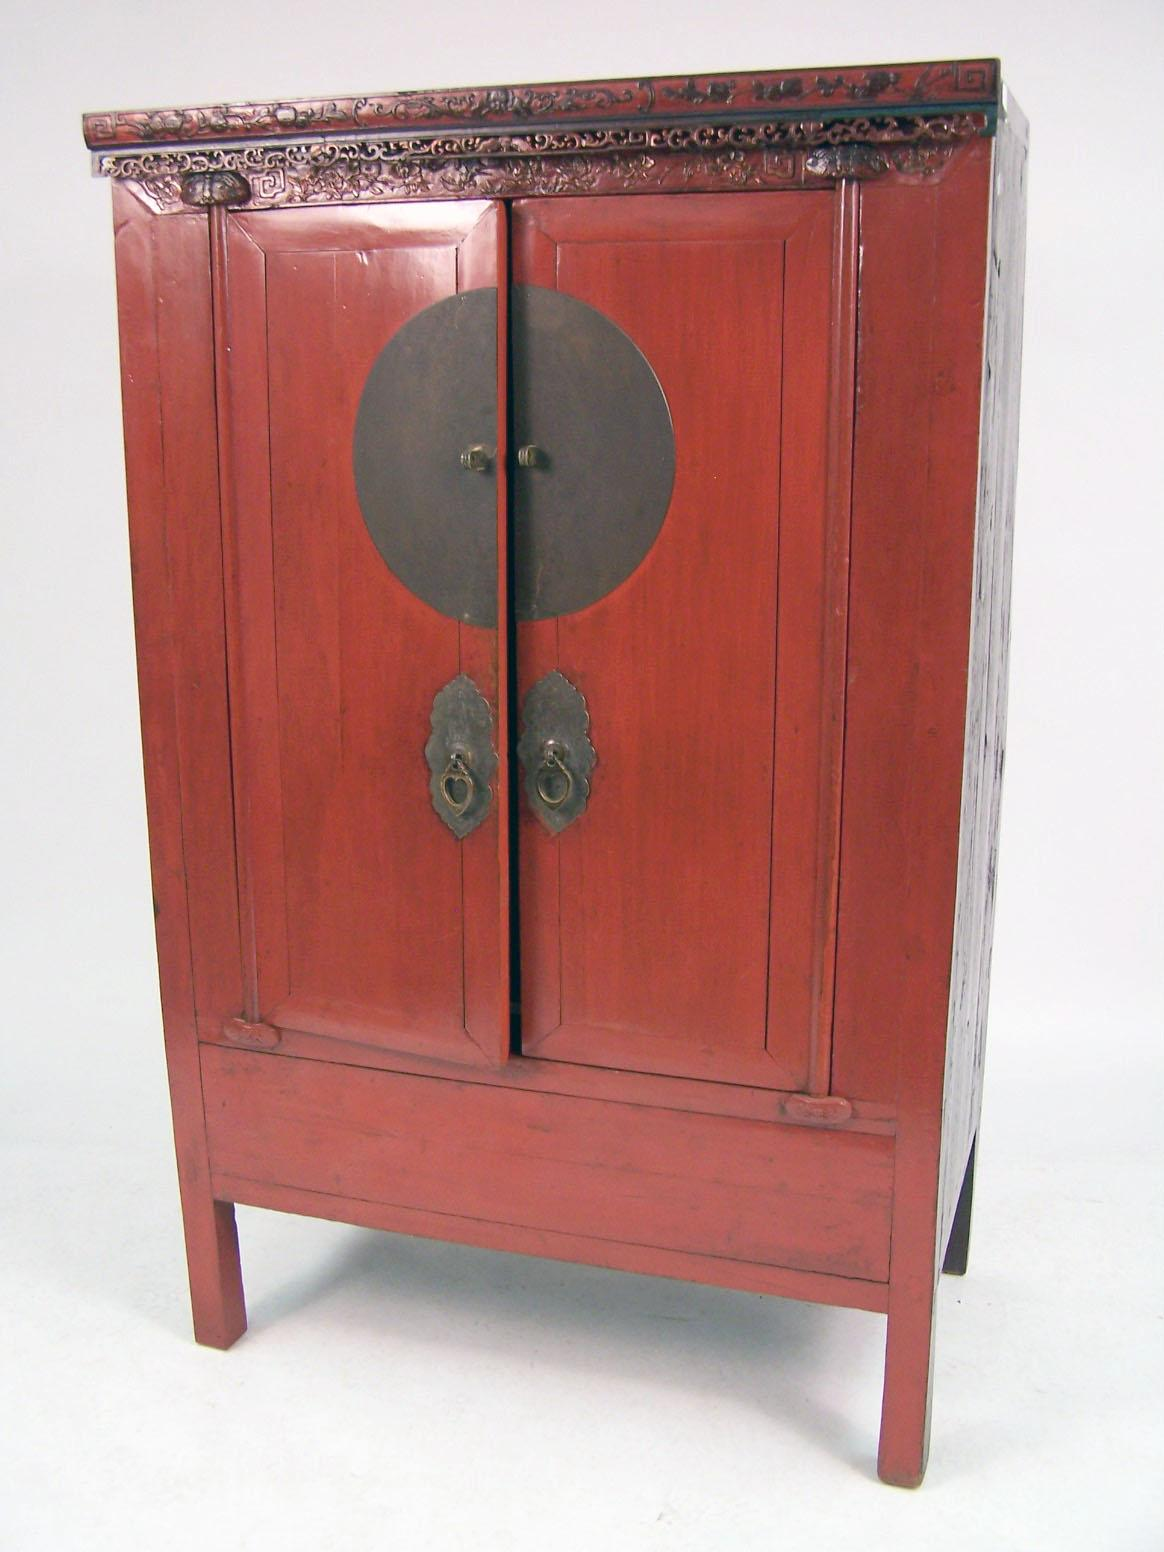 A CHINESE RED AND BLACK LACQUER CARVED HARDWOOD WEDDING CABINET